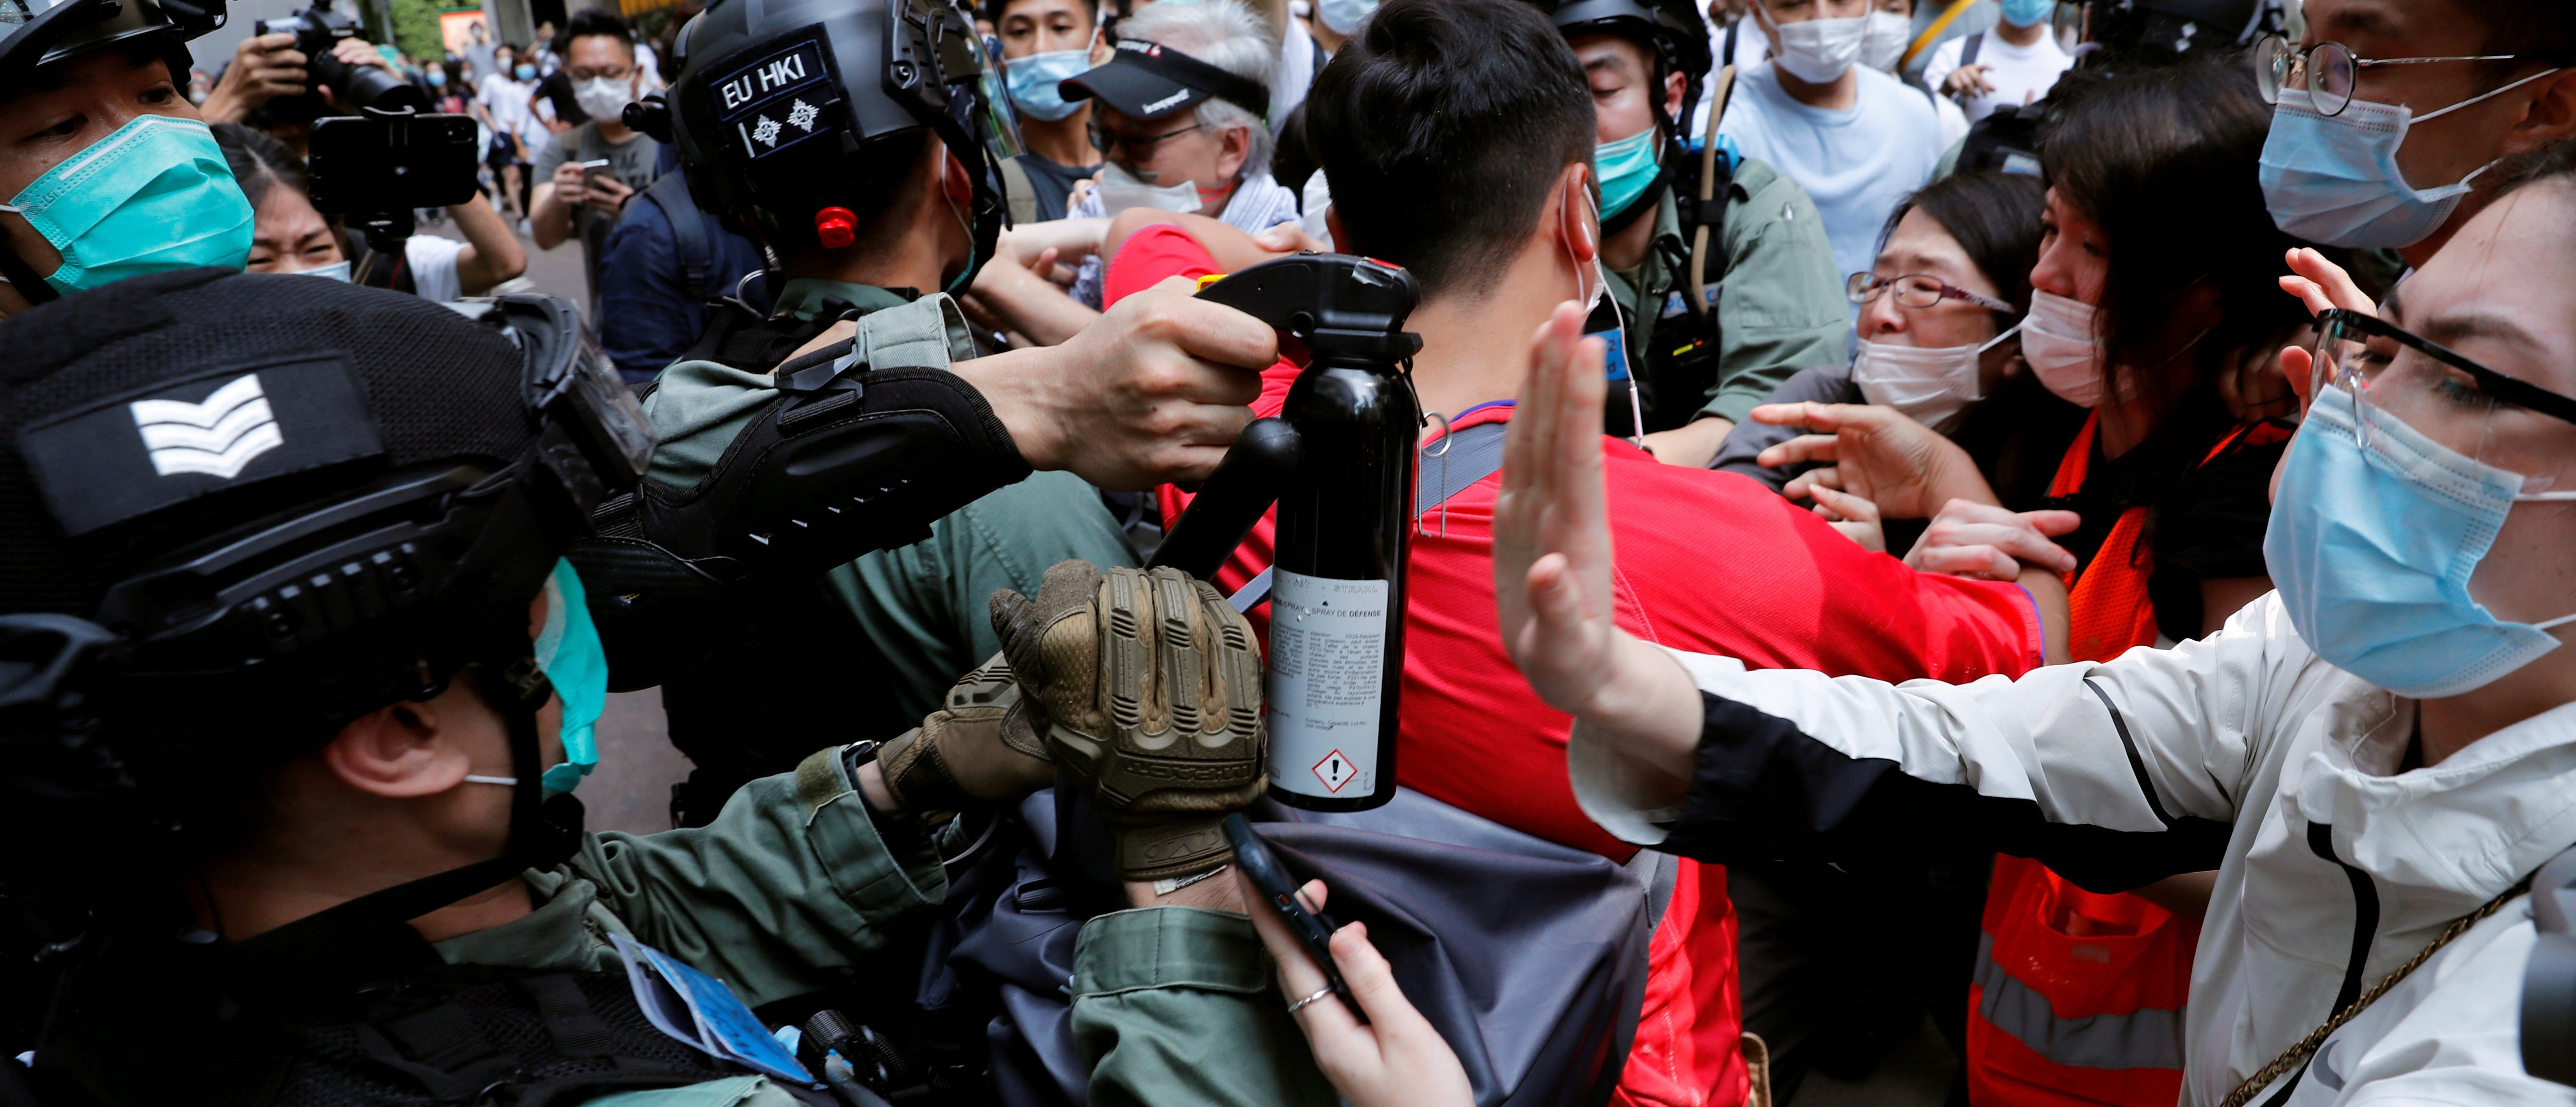 Anti-government demonstrators scuffle with riot police during a lunch time protest as a second reading of a controversial national anthem law takes place in Hong Kong, China May 27, 2020. REUTERS/Tyrone Siu TPX IMAGES OF THE DAY - RC2VWG9A744Q